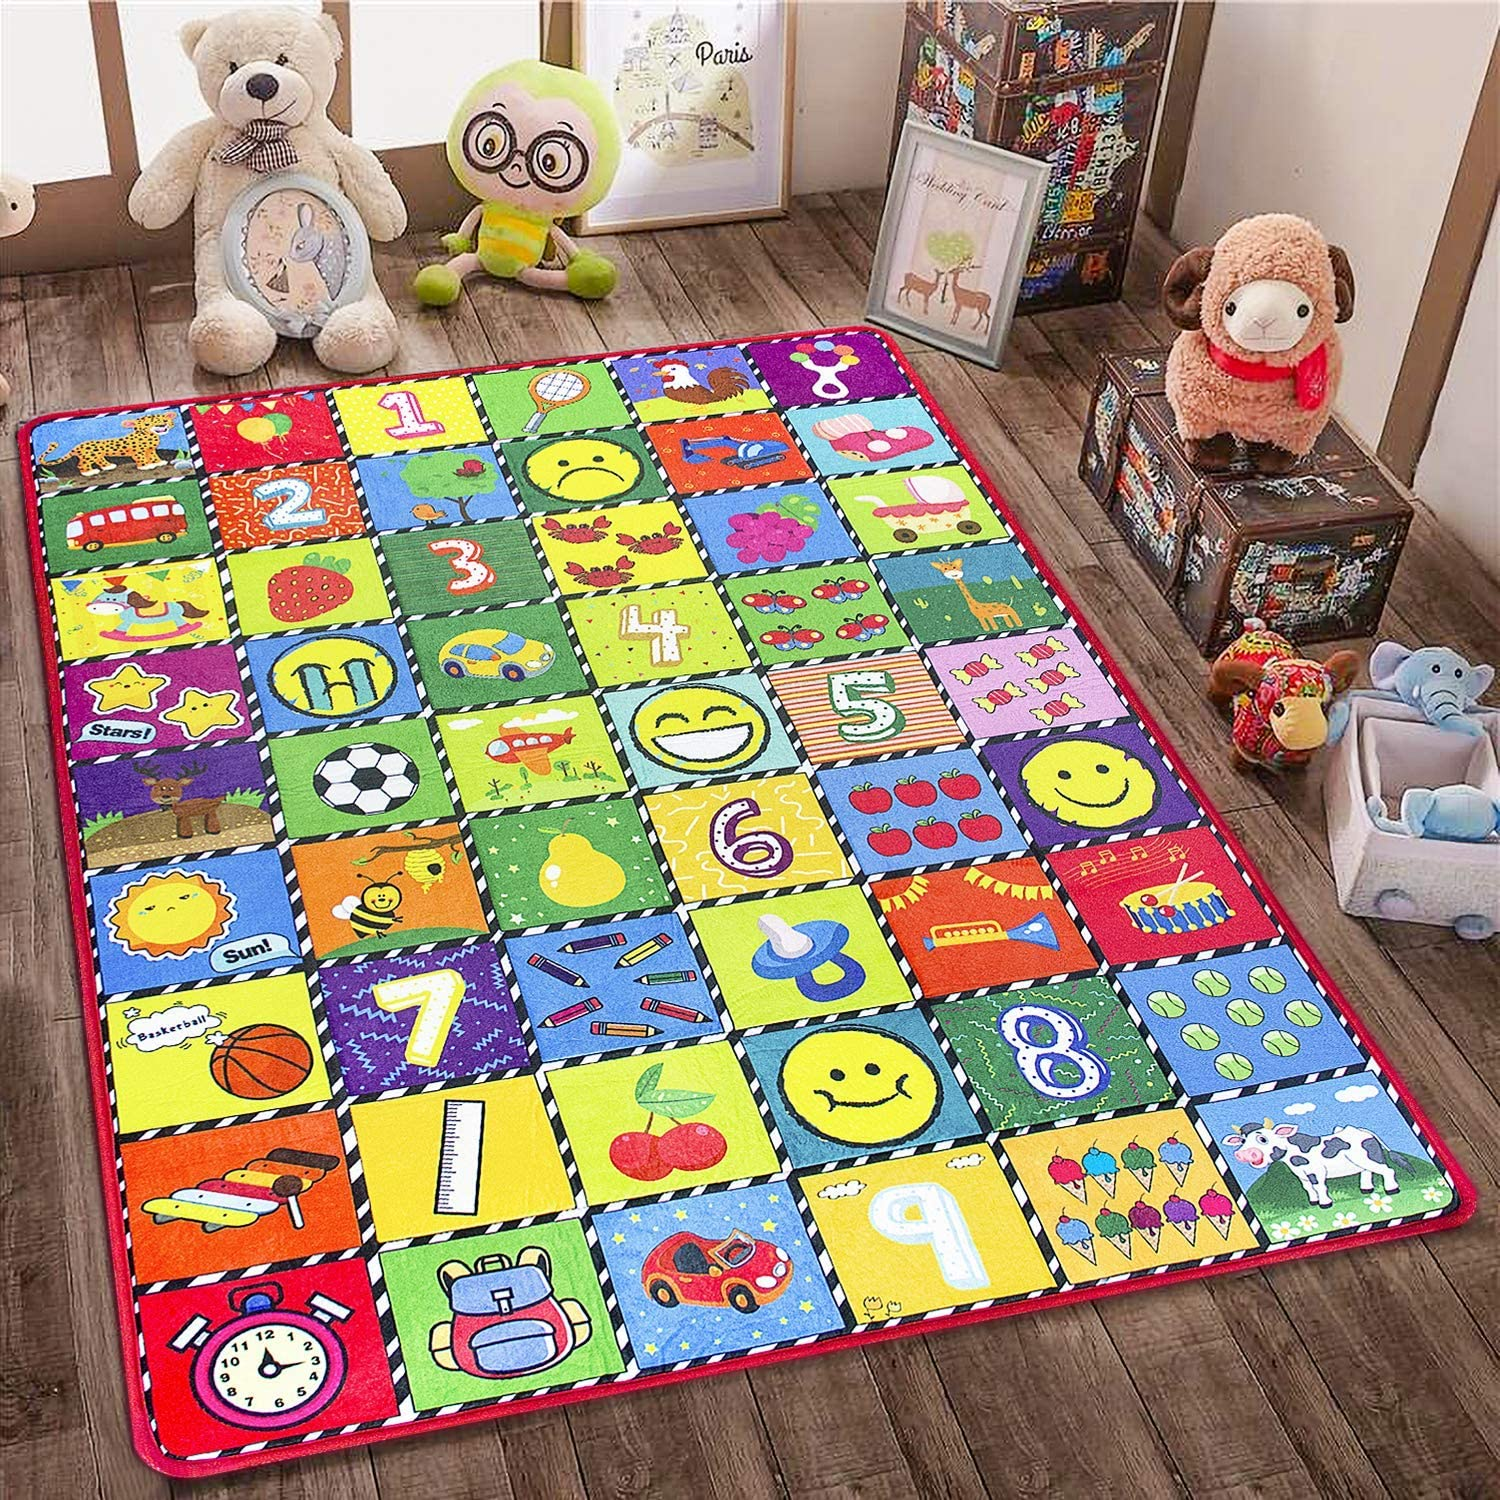 teytoy Baby Rug for Crawling - How Many Are There? Kids Area Rugs Educational Play Mat for Room Decor, Count Game, Learn Animals, Expressions, Family Beach Carpet Outdoor Indoor Gift 3.4 x 5